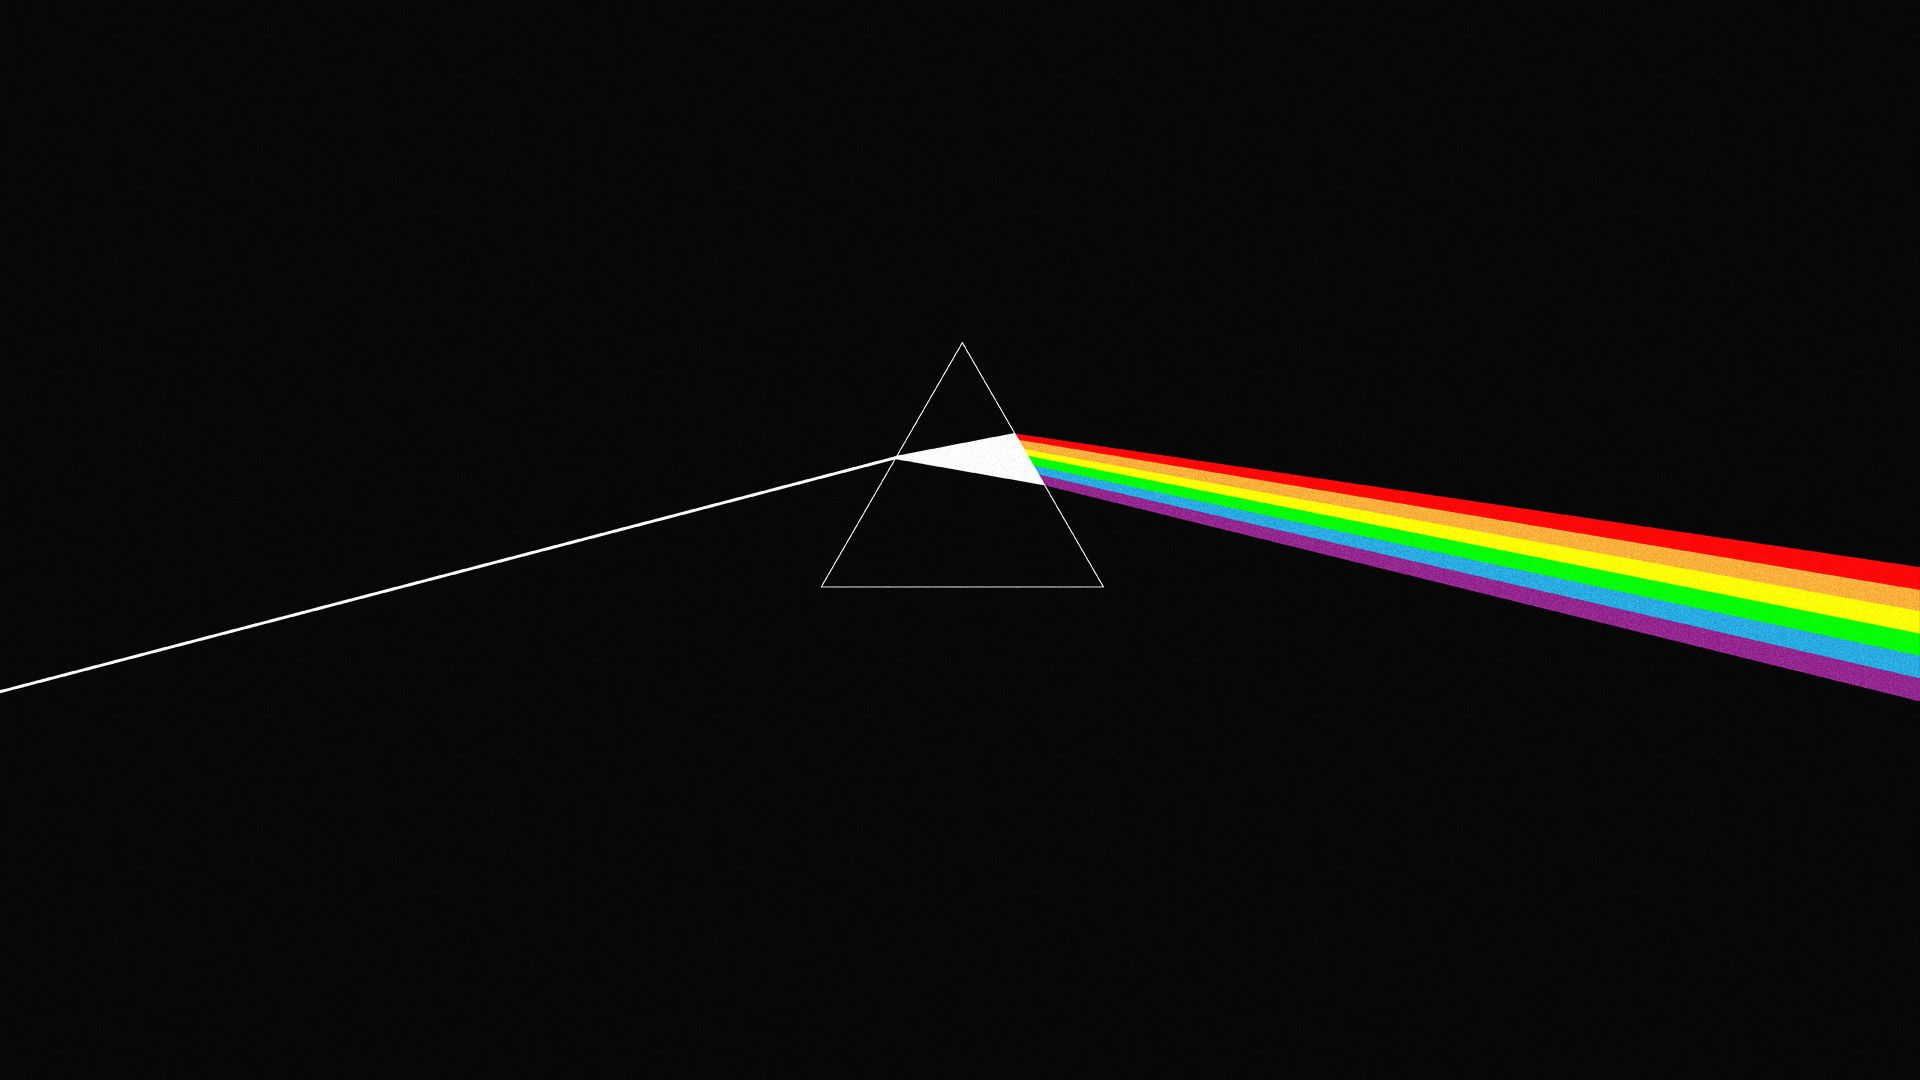 pink floyd the wall wallpaper HD 1920x1080